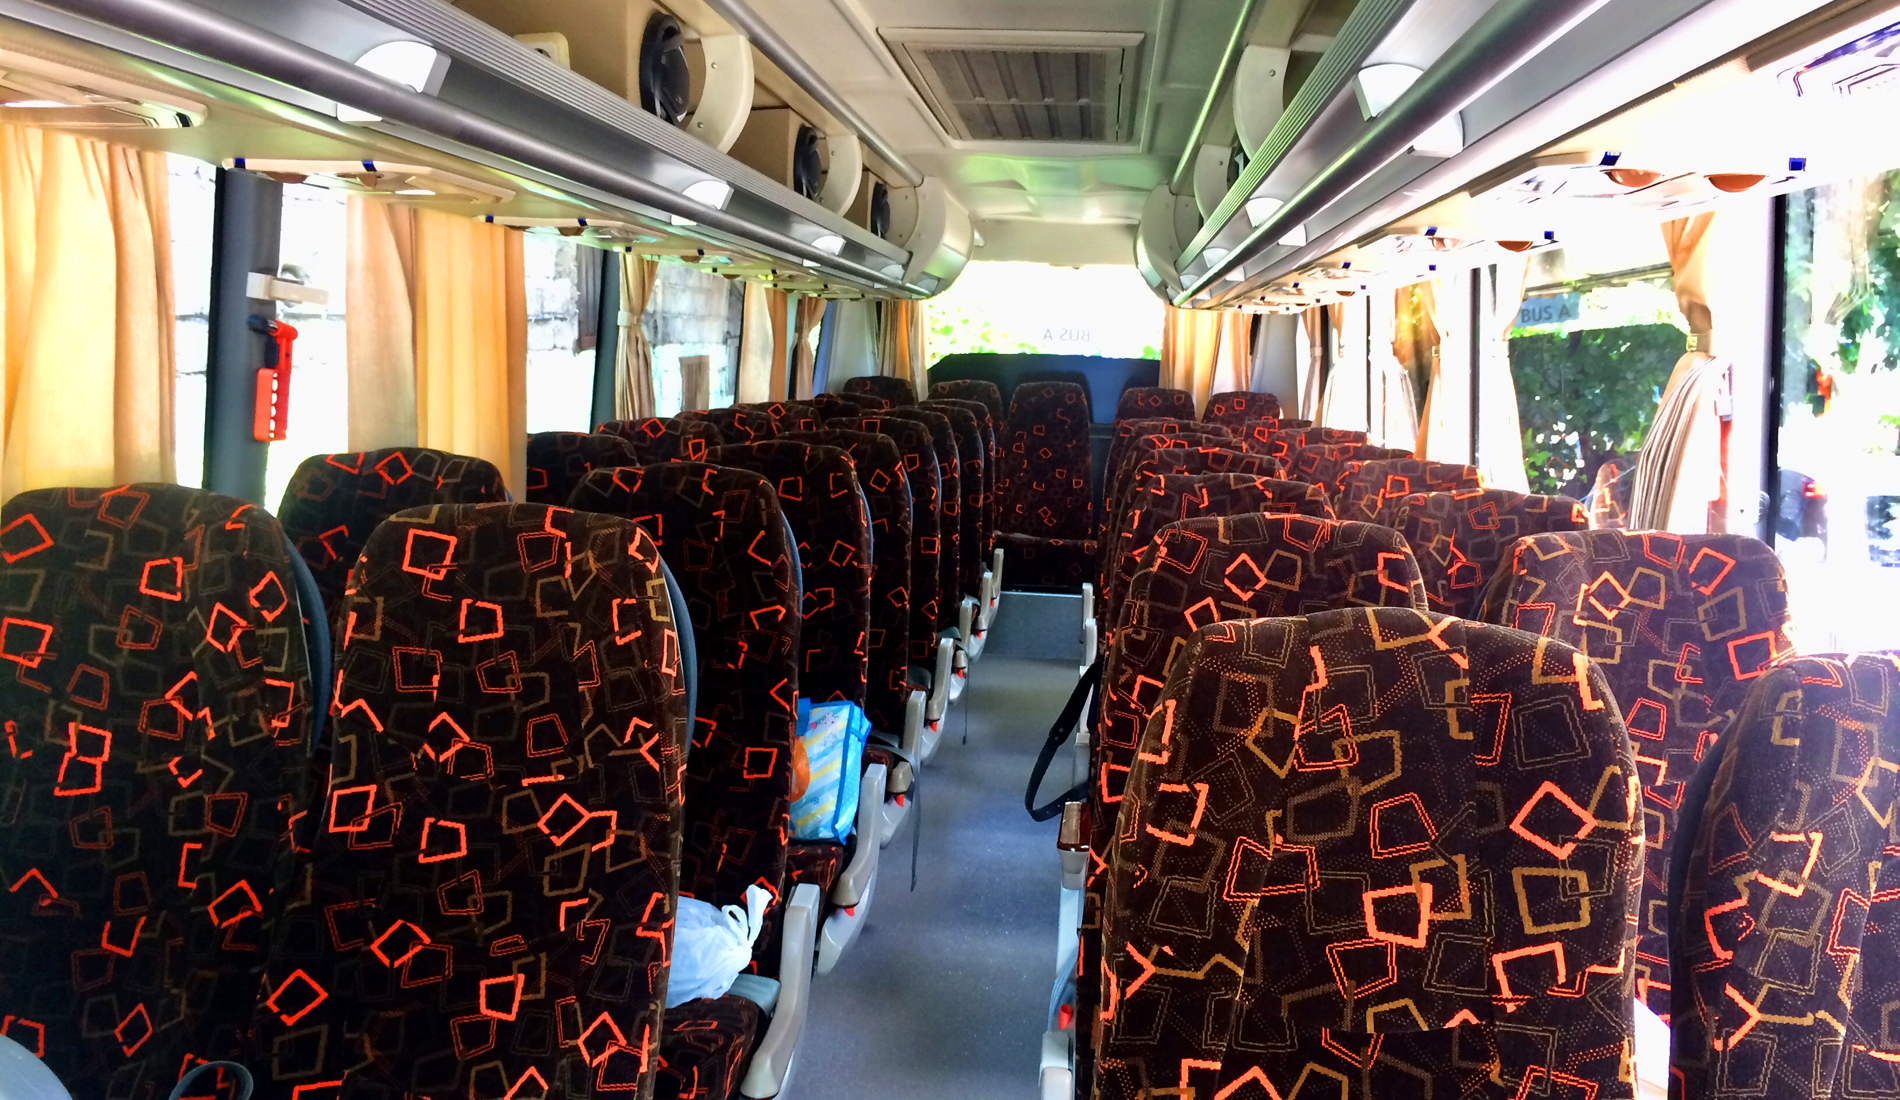 Cabin Bus Charter - Things To Do in Bali Tours Activities